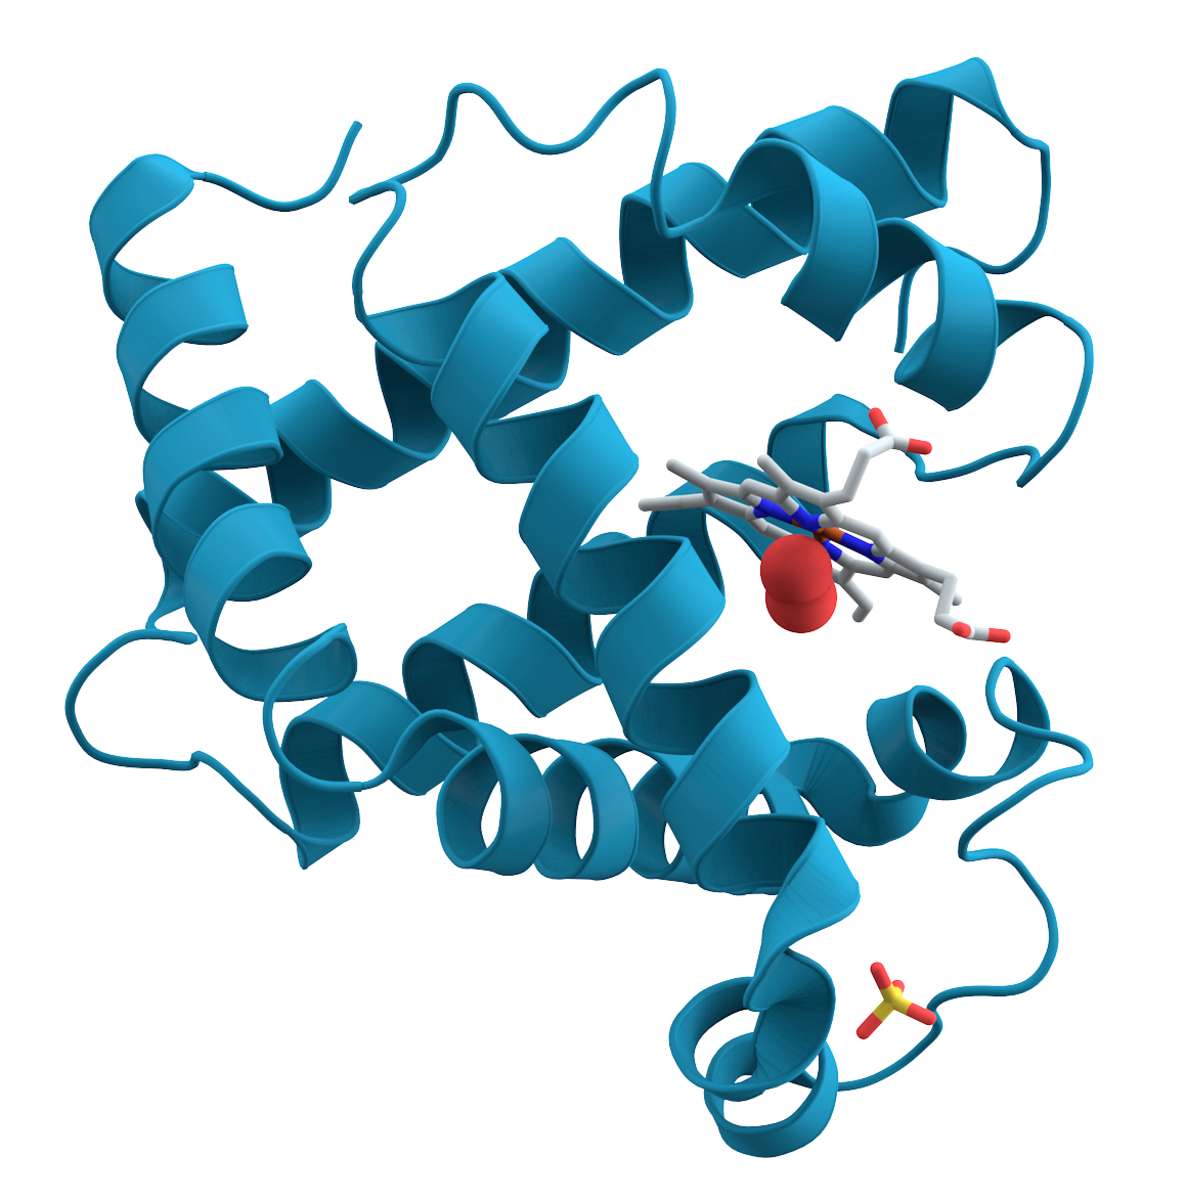 An illustration showing myoglobin (a muscle protein) and the complex, folded structure of a functional protein; the folds are held in place by chemical bonds